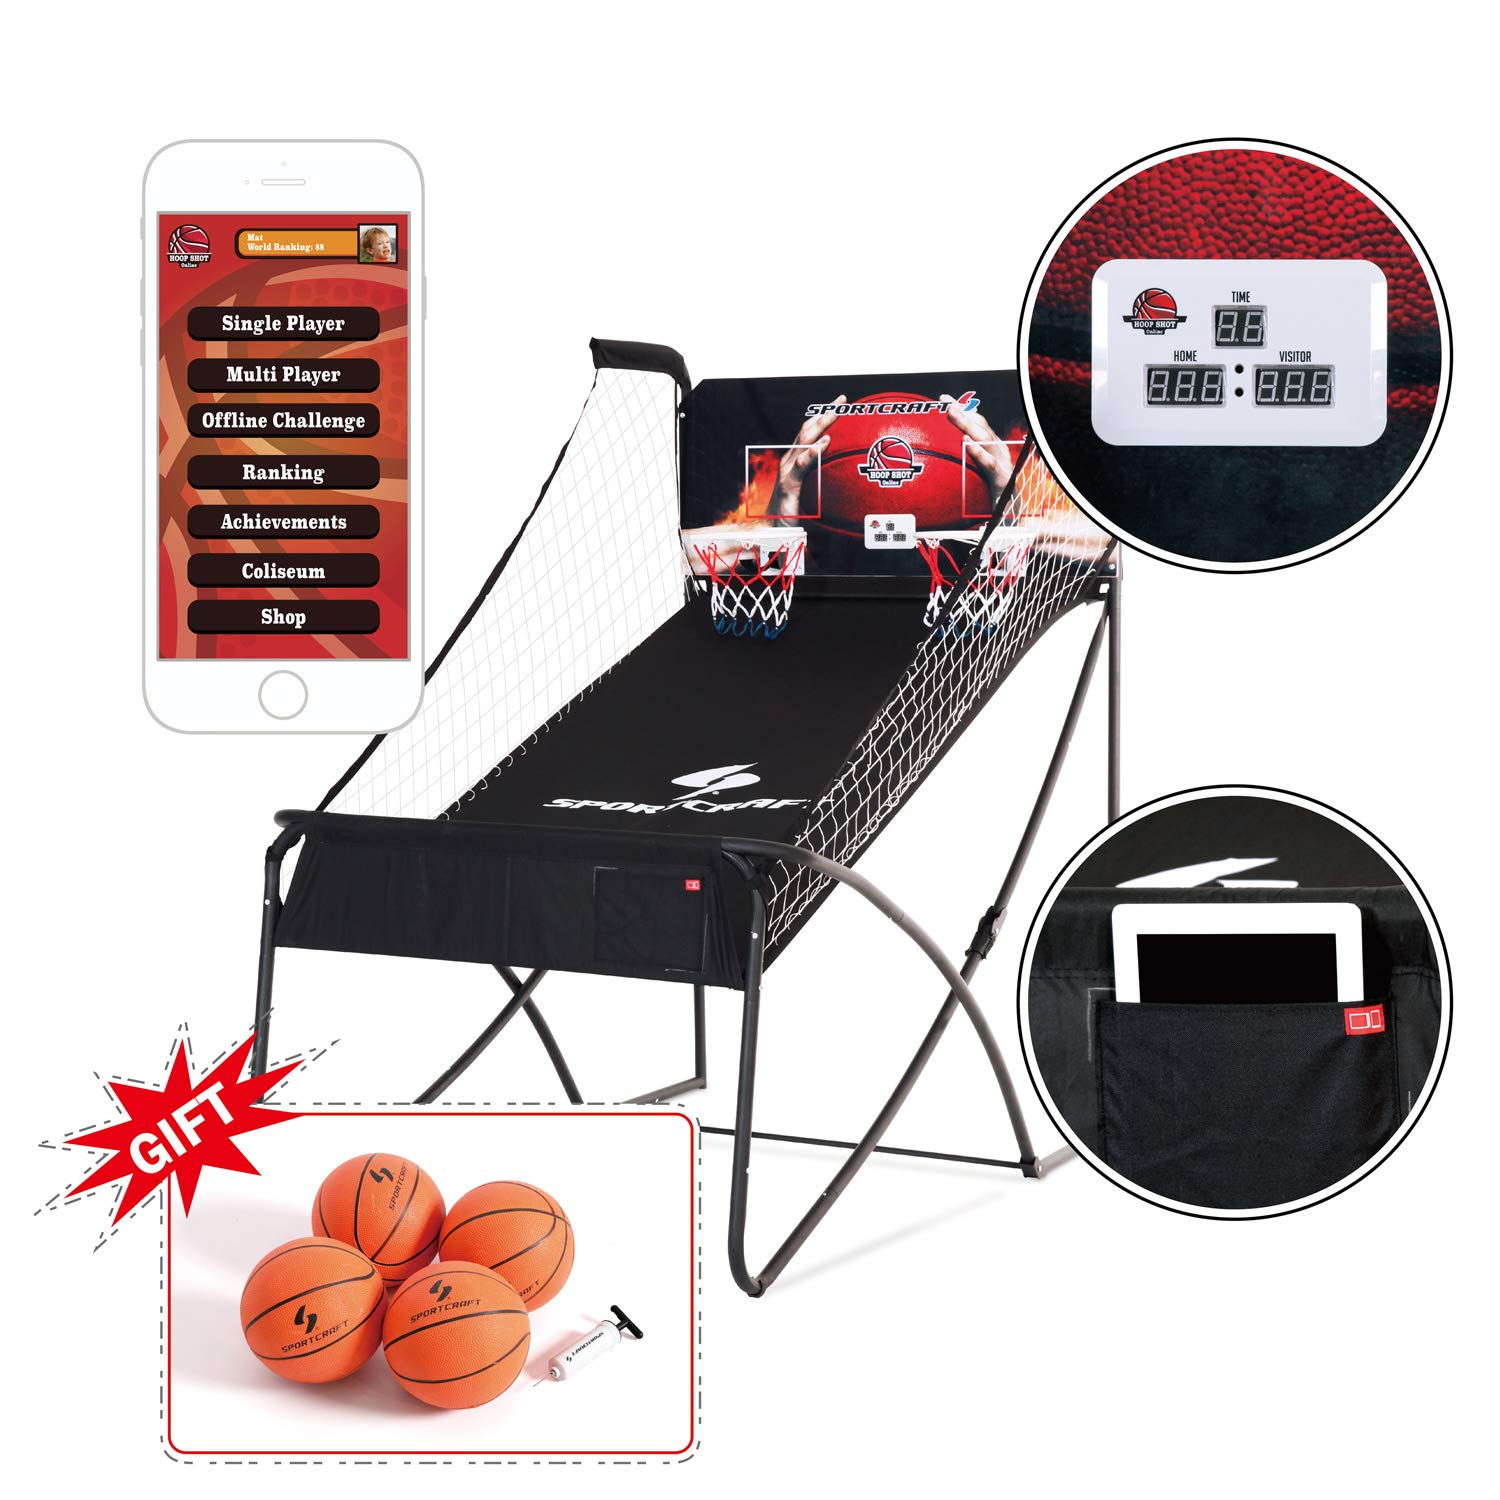 Sportcraft Online App+ Electronic Basketball Double Hoop Shot Arcade, Heavy Duty 1 1/4'' Tube ,Built in bluetooth, with free 7'' rubber basketballs x 4, pump & needle by Shaq and Sportcraft